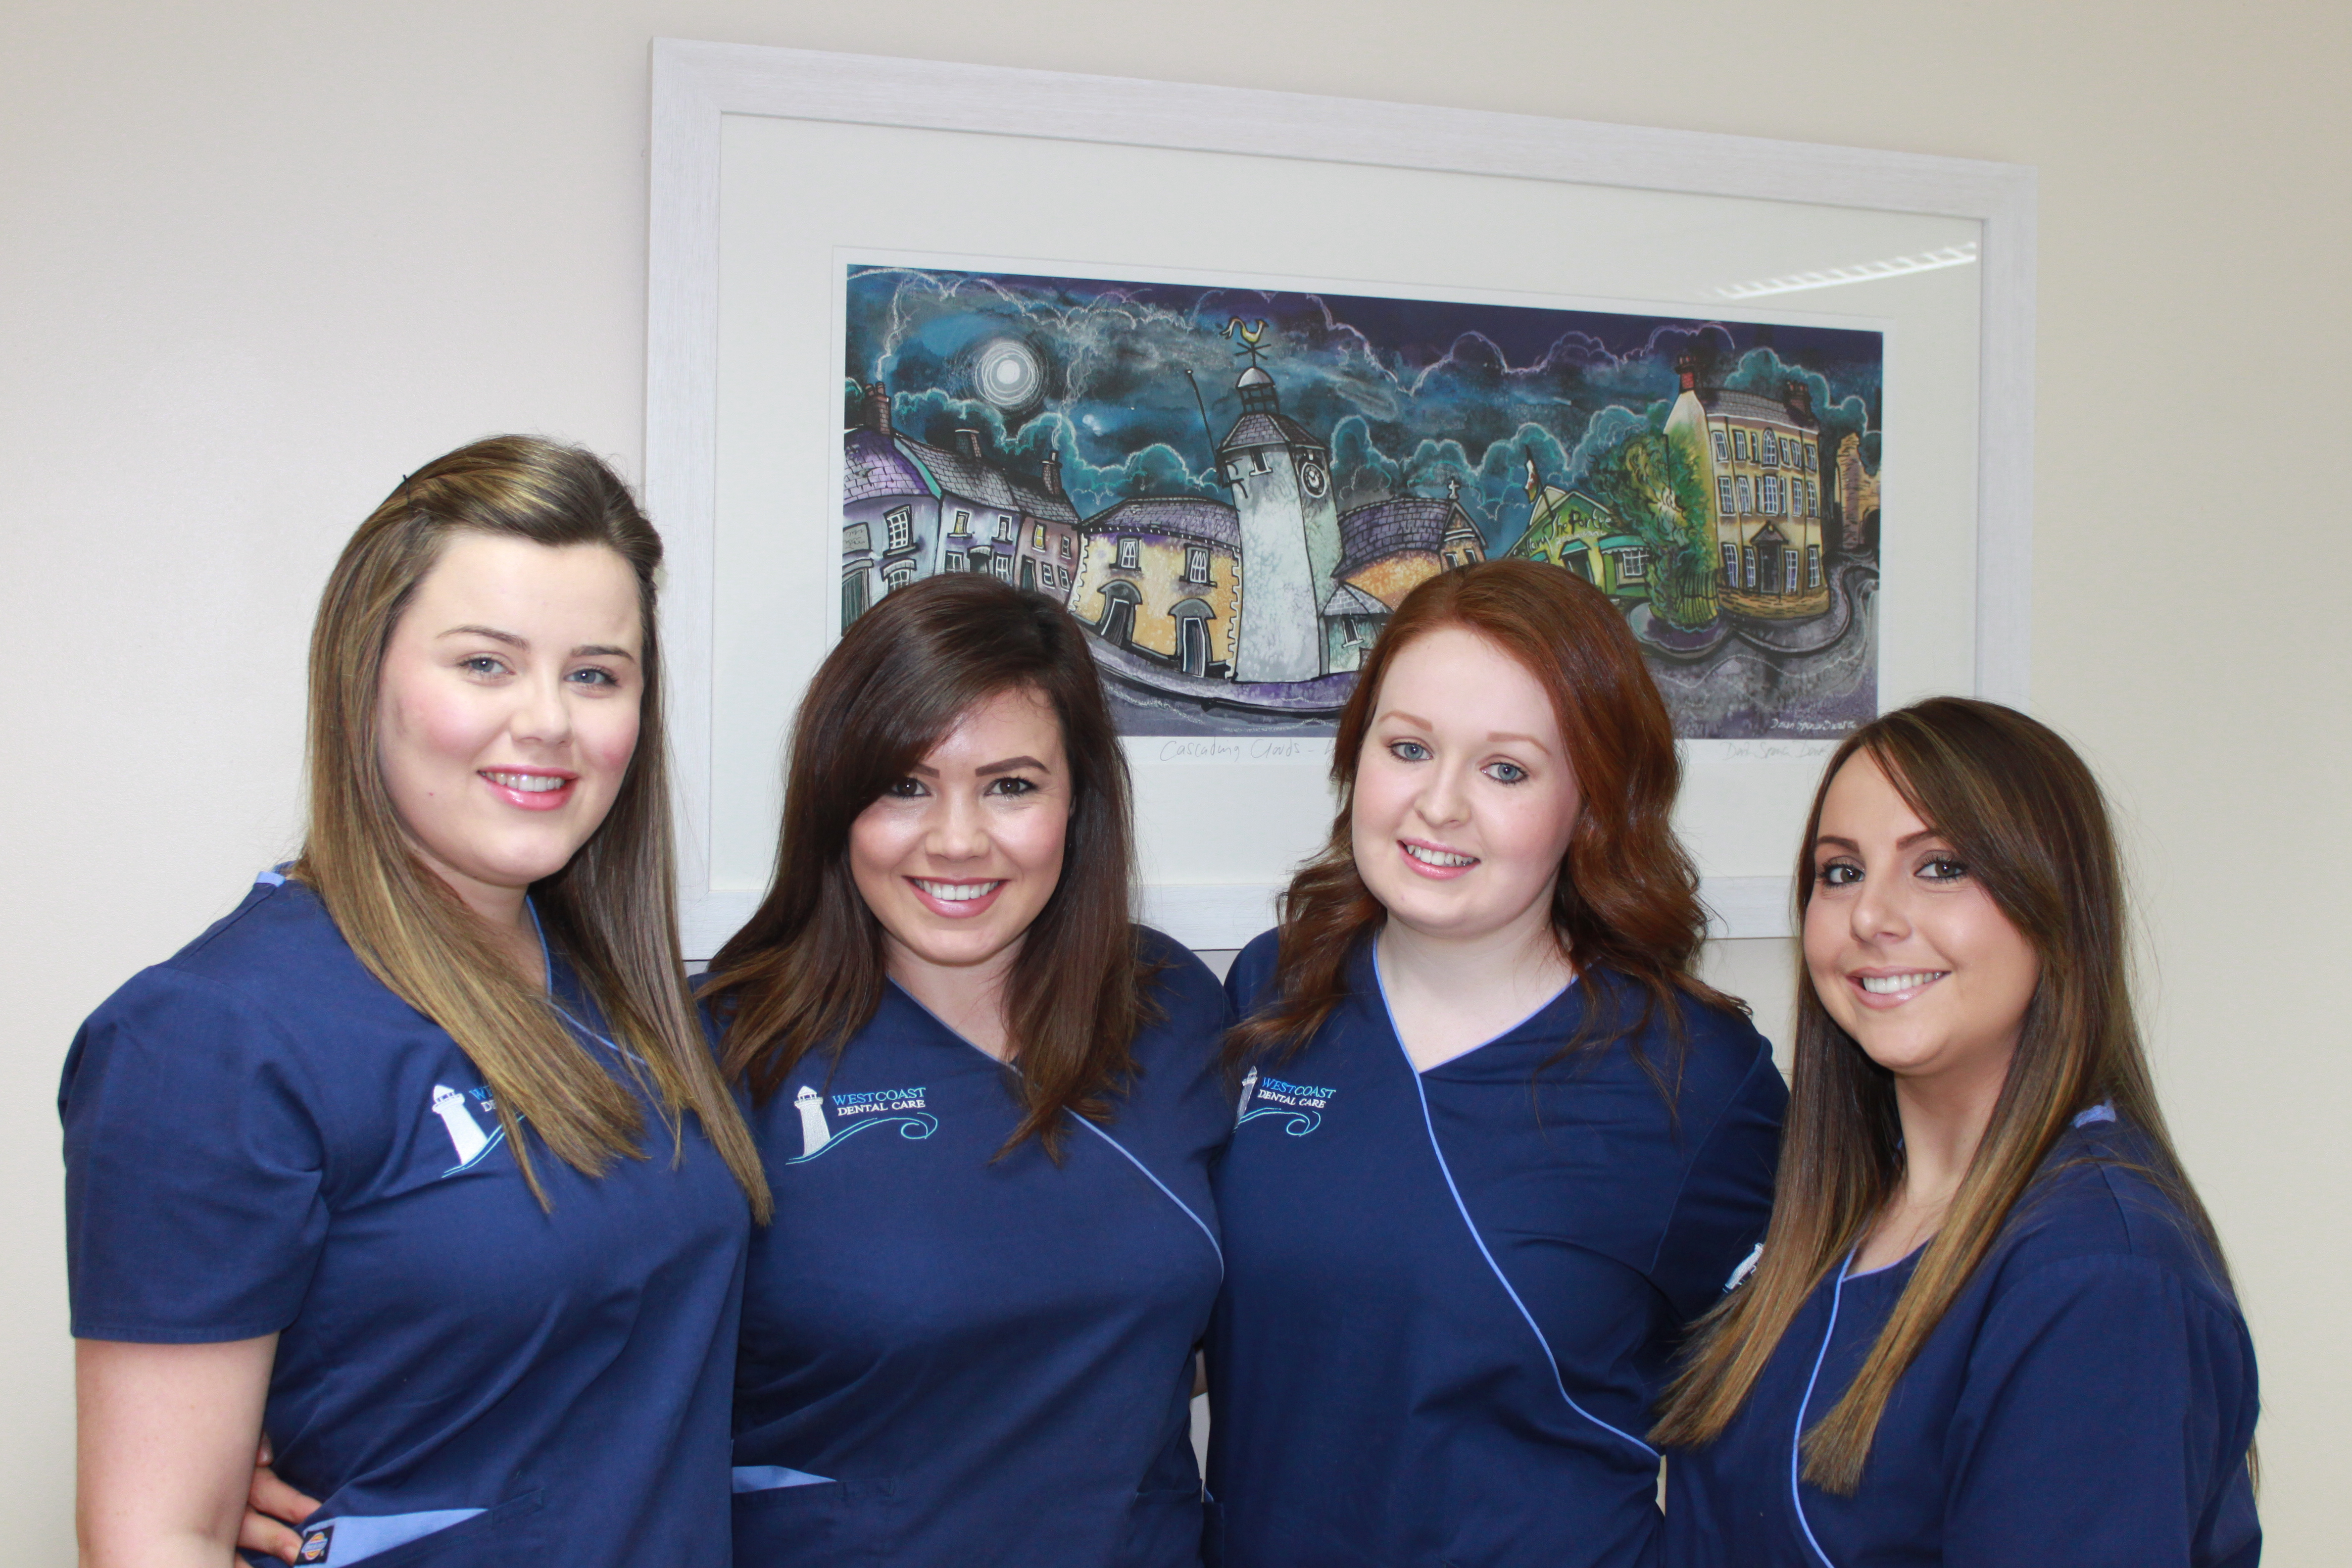 Swansea Dentist | Meet the team | Specialist Dentists Swansea